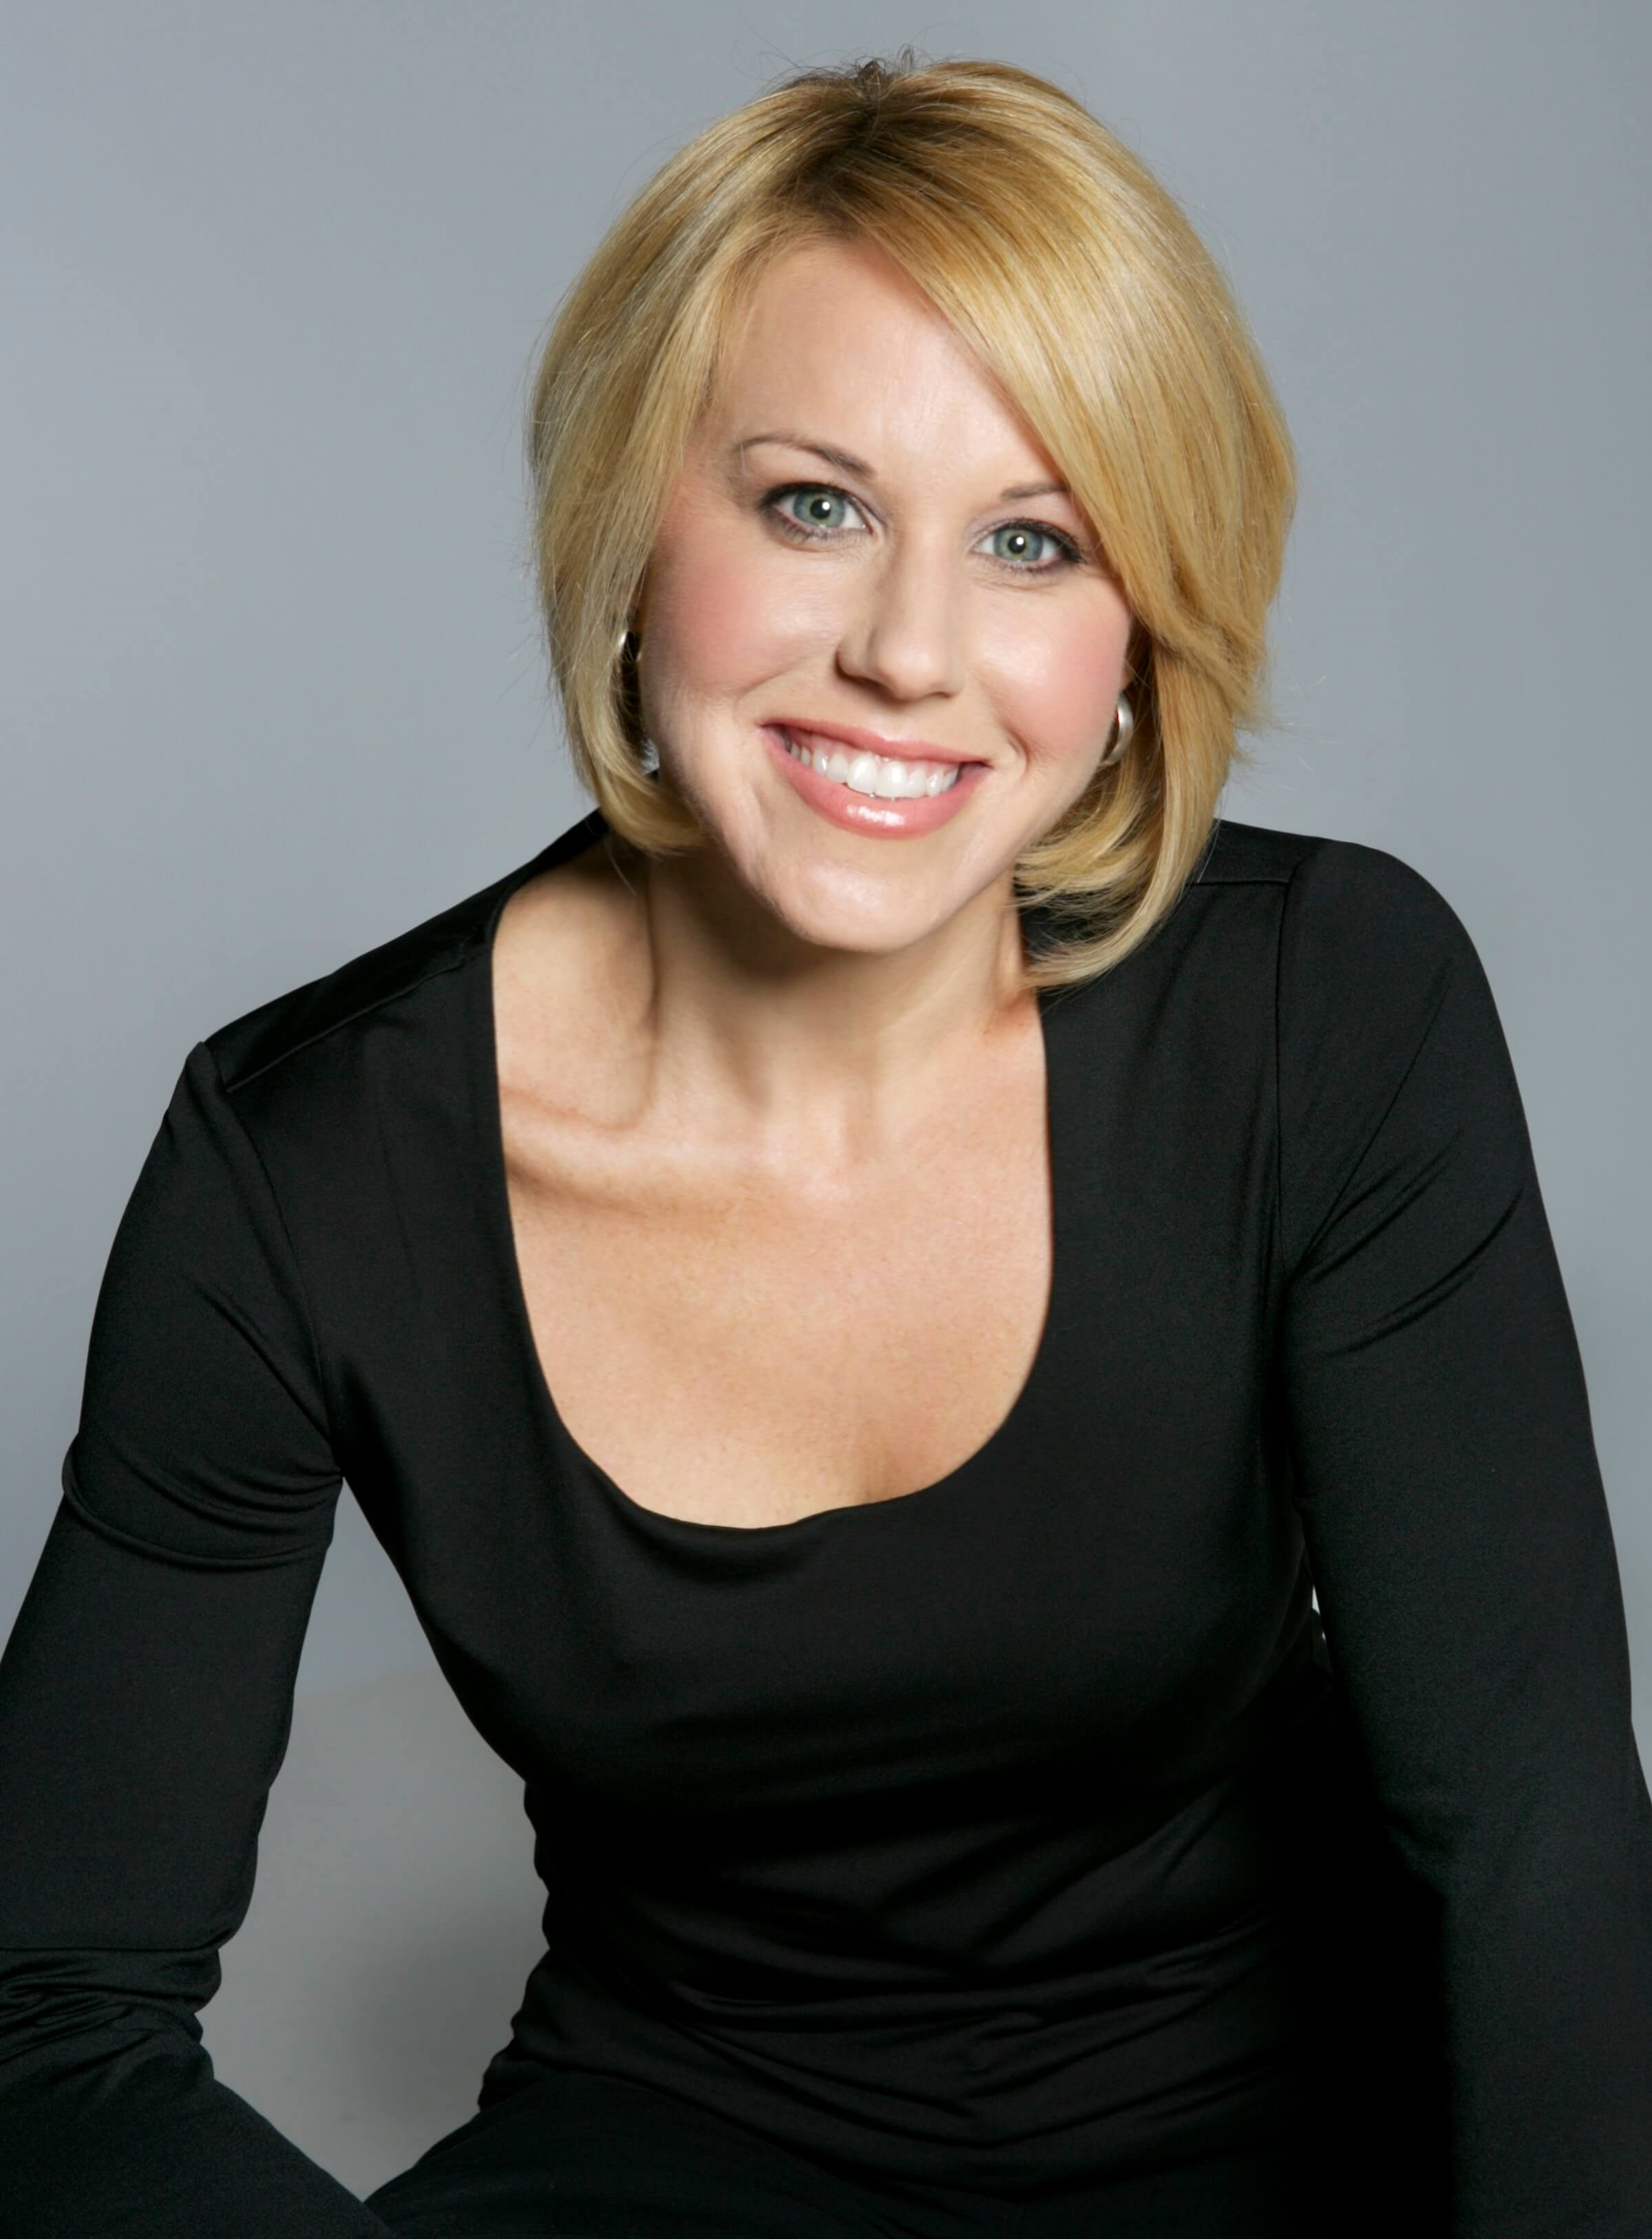 Image of Beth Griffin